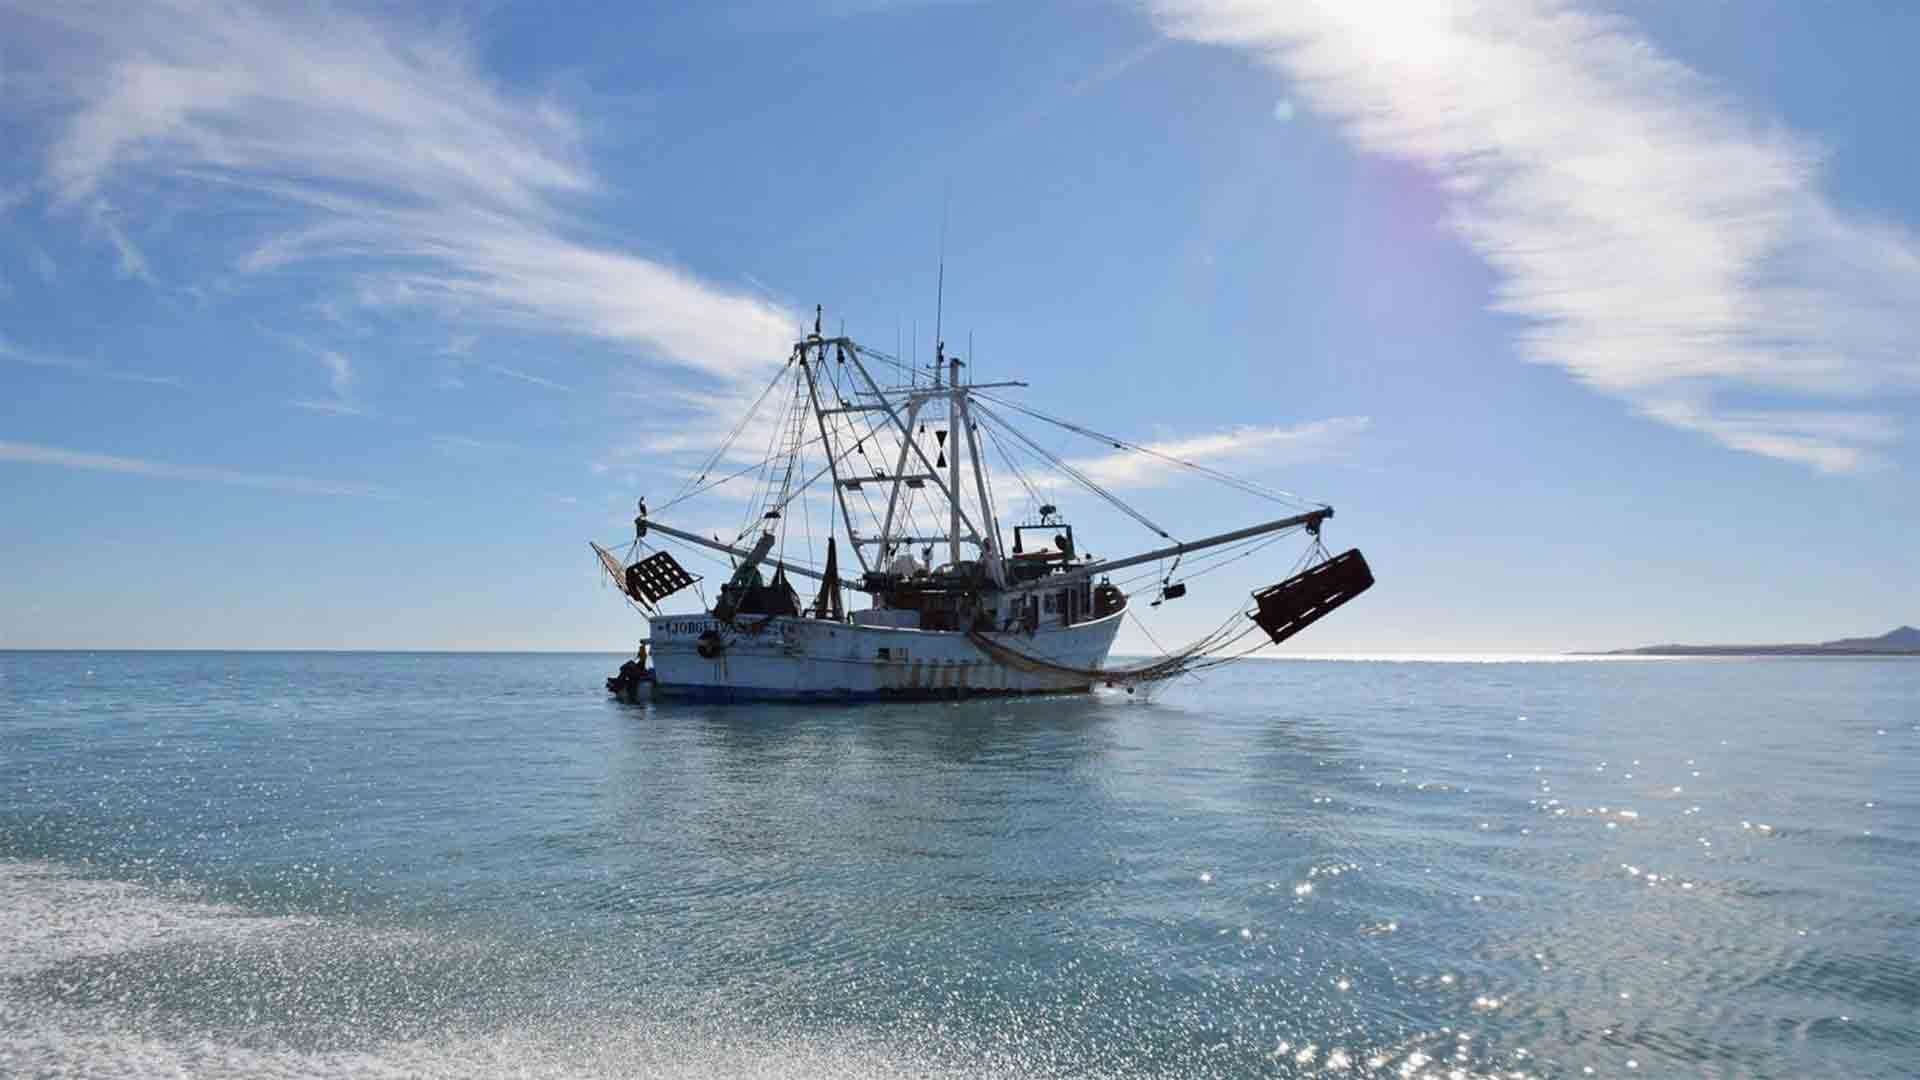 A large fishing boat in the Sea of Cortez.